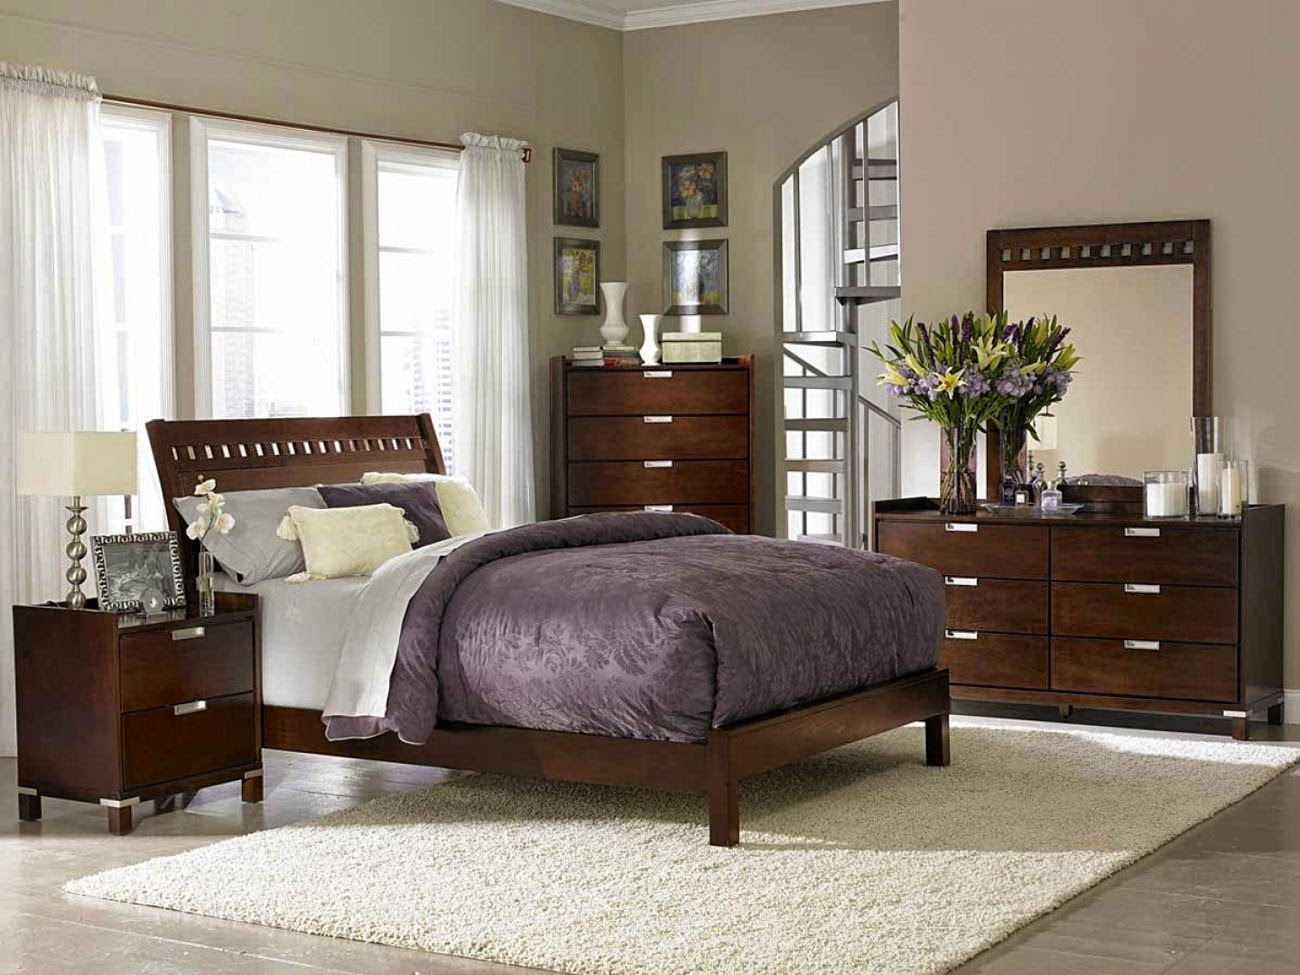 Home Design Ideas Bedroom Classic Simple